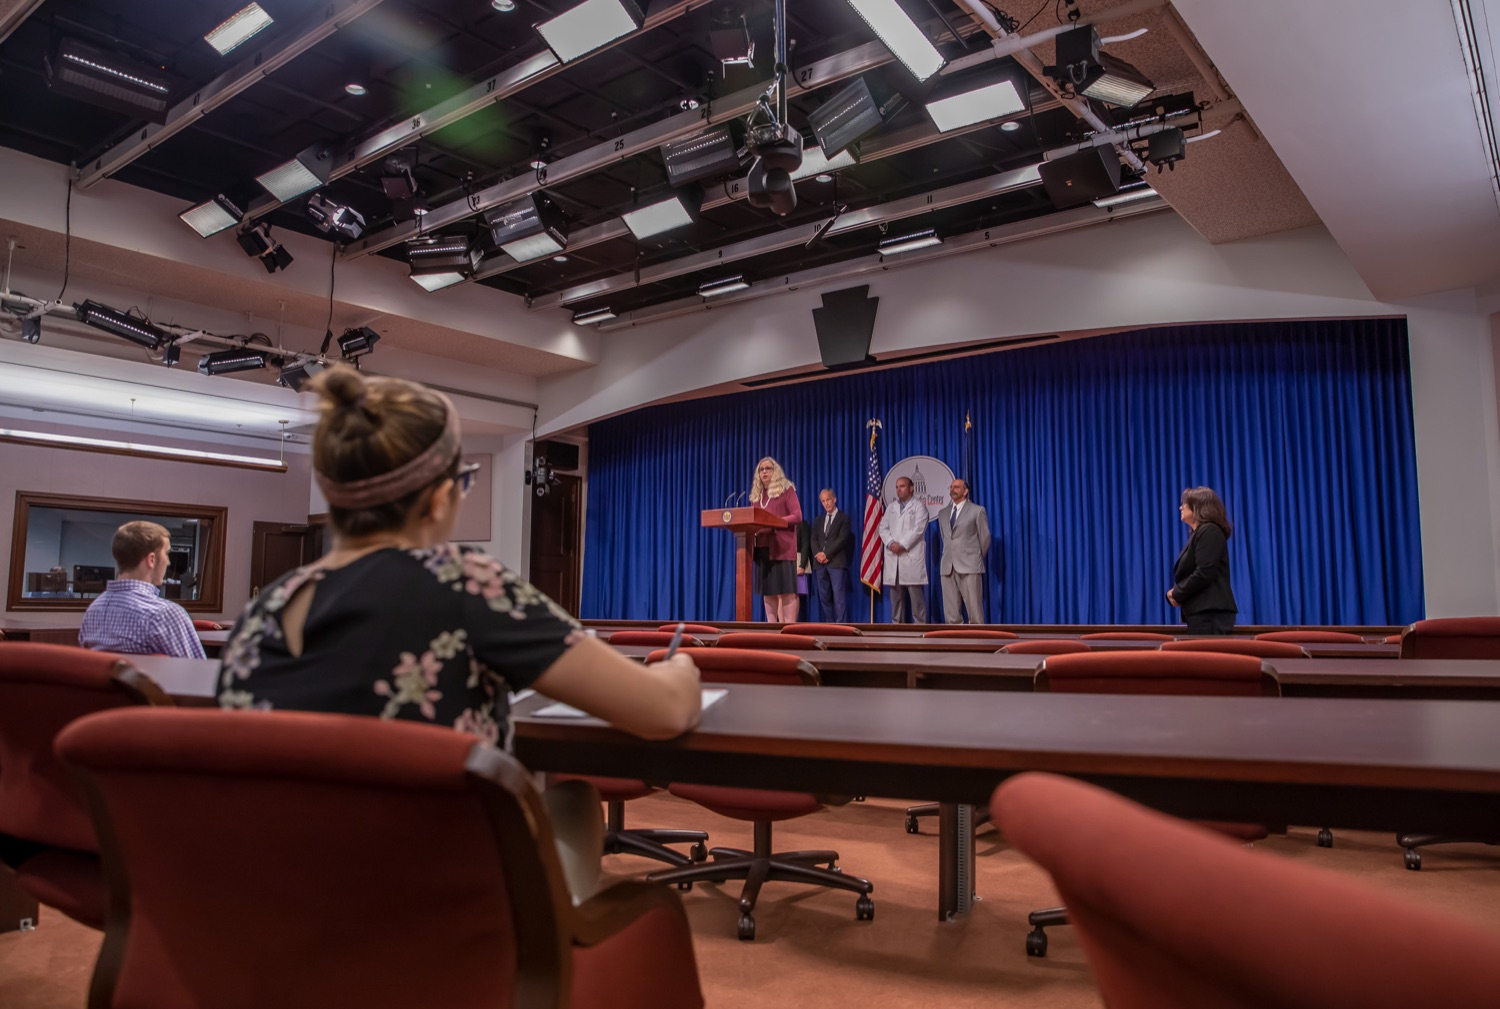 "<a href=""http://filesource.abacast.com/commonwealthofpa/photo/17415_DOH_RXGuidlines_AG_05.jpg"" target=""_blank"">⇣ Download Photo<br></a>Harrisburg, PA.  Dr. Rachel Levine, Secretary of the Pennsylvania Dept. of Health, speaking at Wednesday's press conference to announce the latest updated prescribing guideline, Treating Pain in Patients with OUD, as part of the second Stop Overdoses in PA: Get Help Now Week, a statewide initiative to get the overdose reversal medication naloxone to Pennsylvanians and get help for residents suffering from the disease of opioid use disorder (OUD).  September 18, 2019"